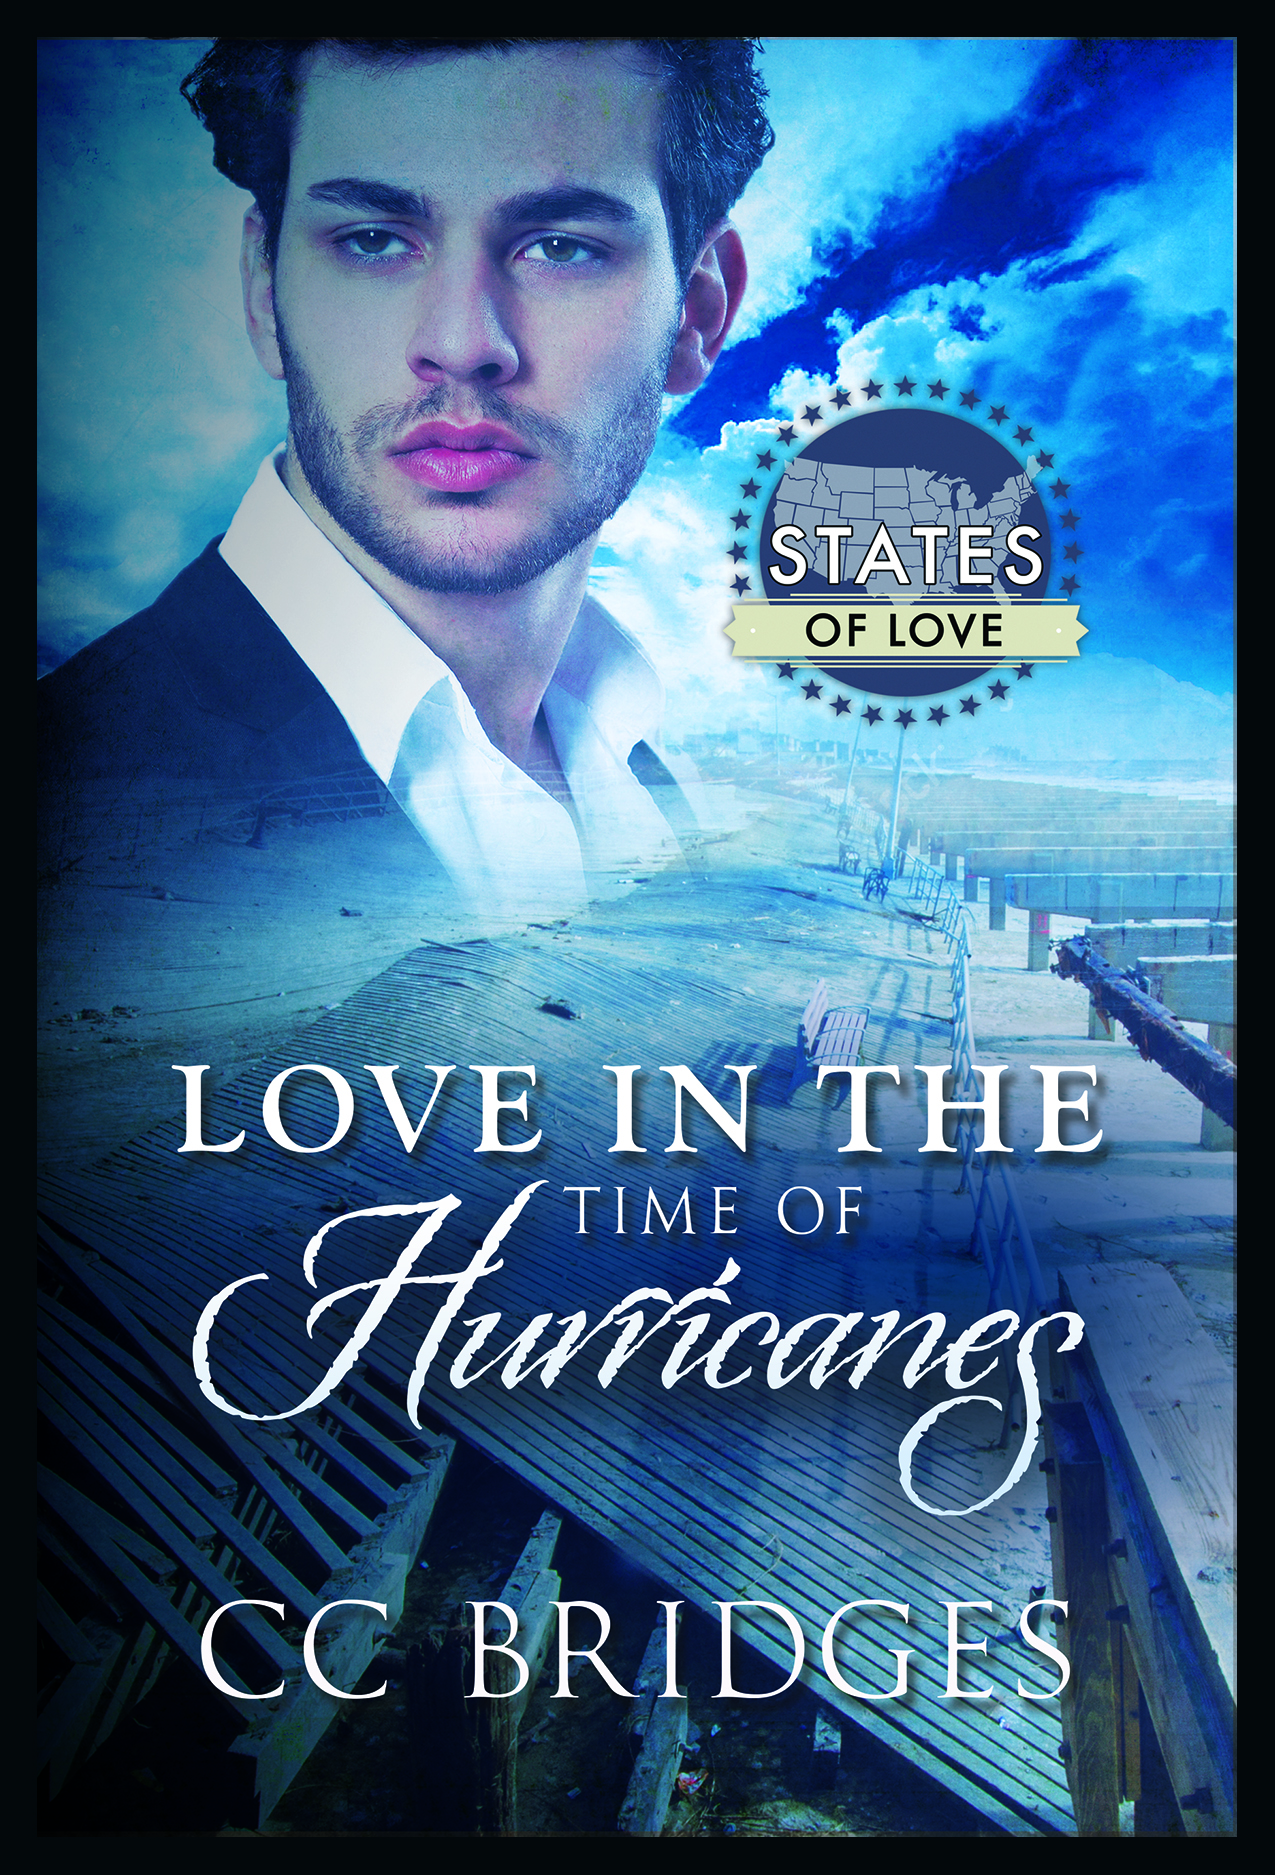 Love in the Time of Hurricanes by C.C. Bridges